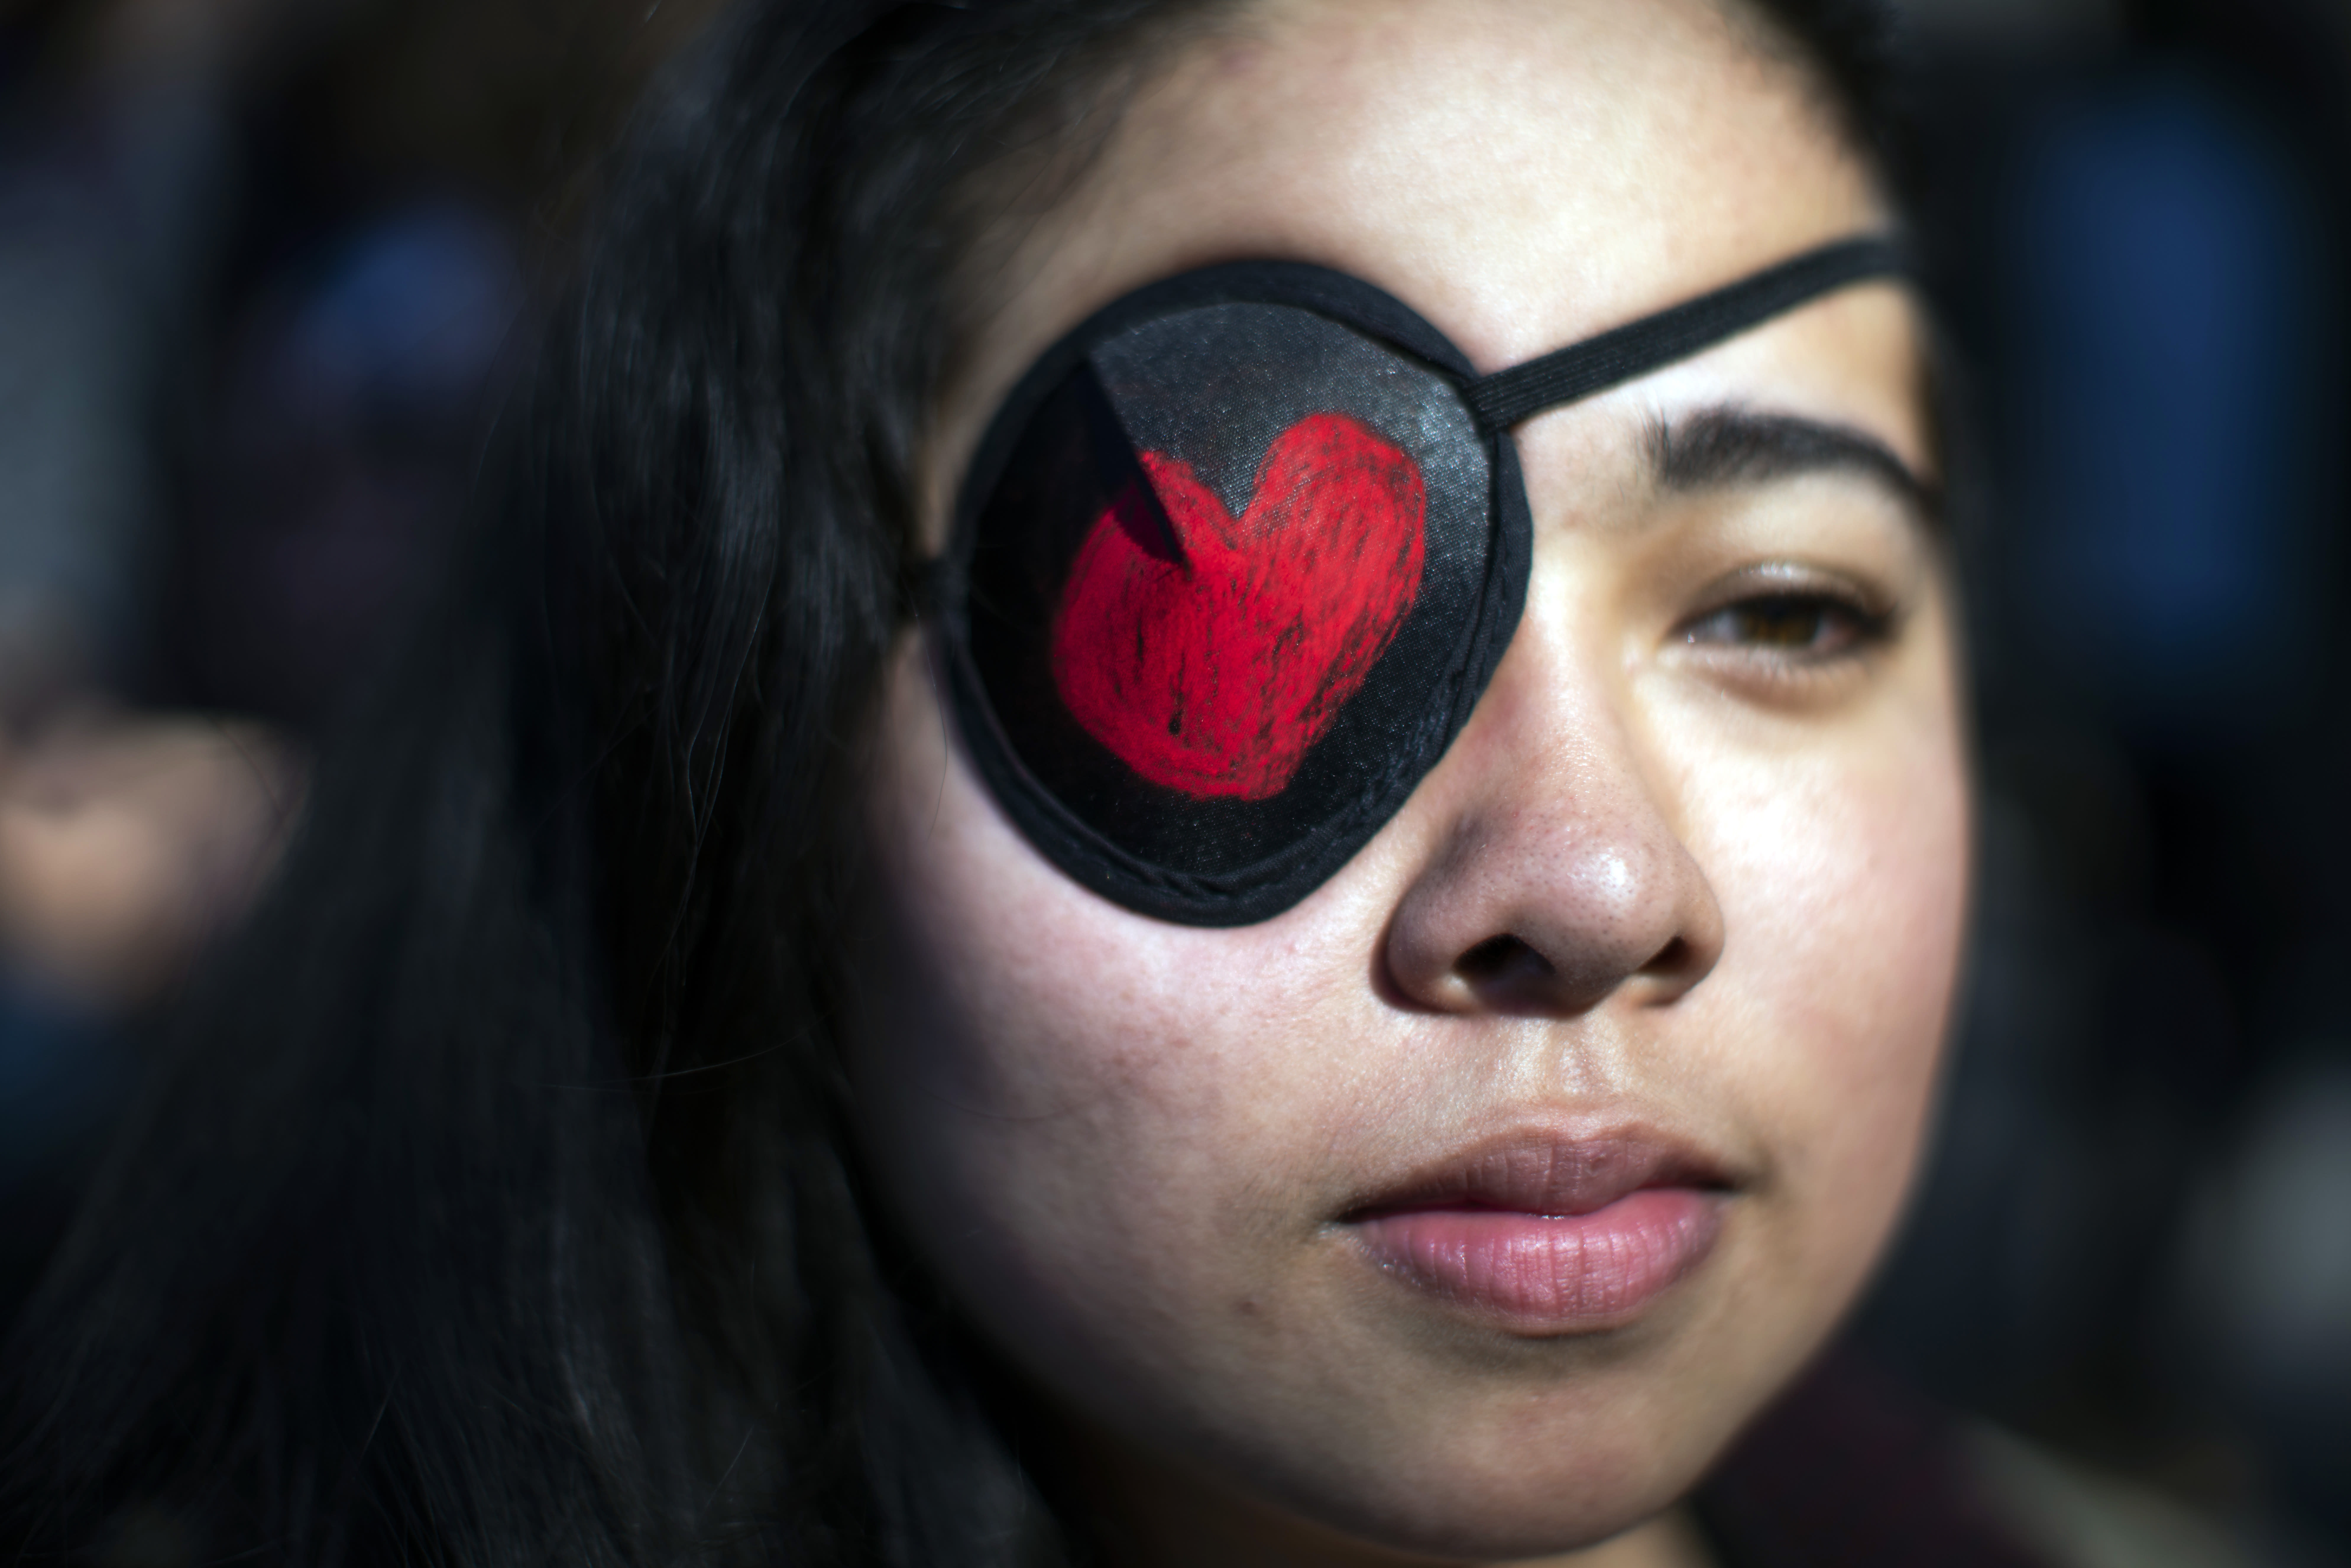 A woman covers her eye in solidarity with the Chilean protestors as people participate in a rally celebrating International Women's Day at Washington Square Park in New York, Sunday, March 8, 2020. (AP Photo/Eduardo Munoz Alvarez)